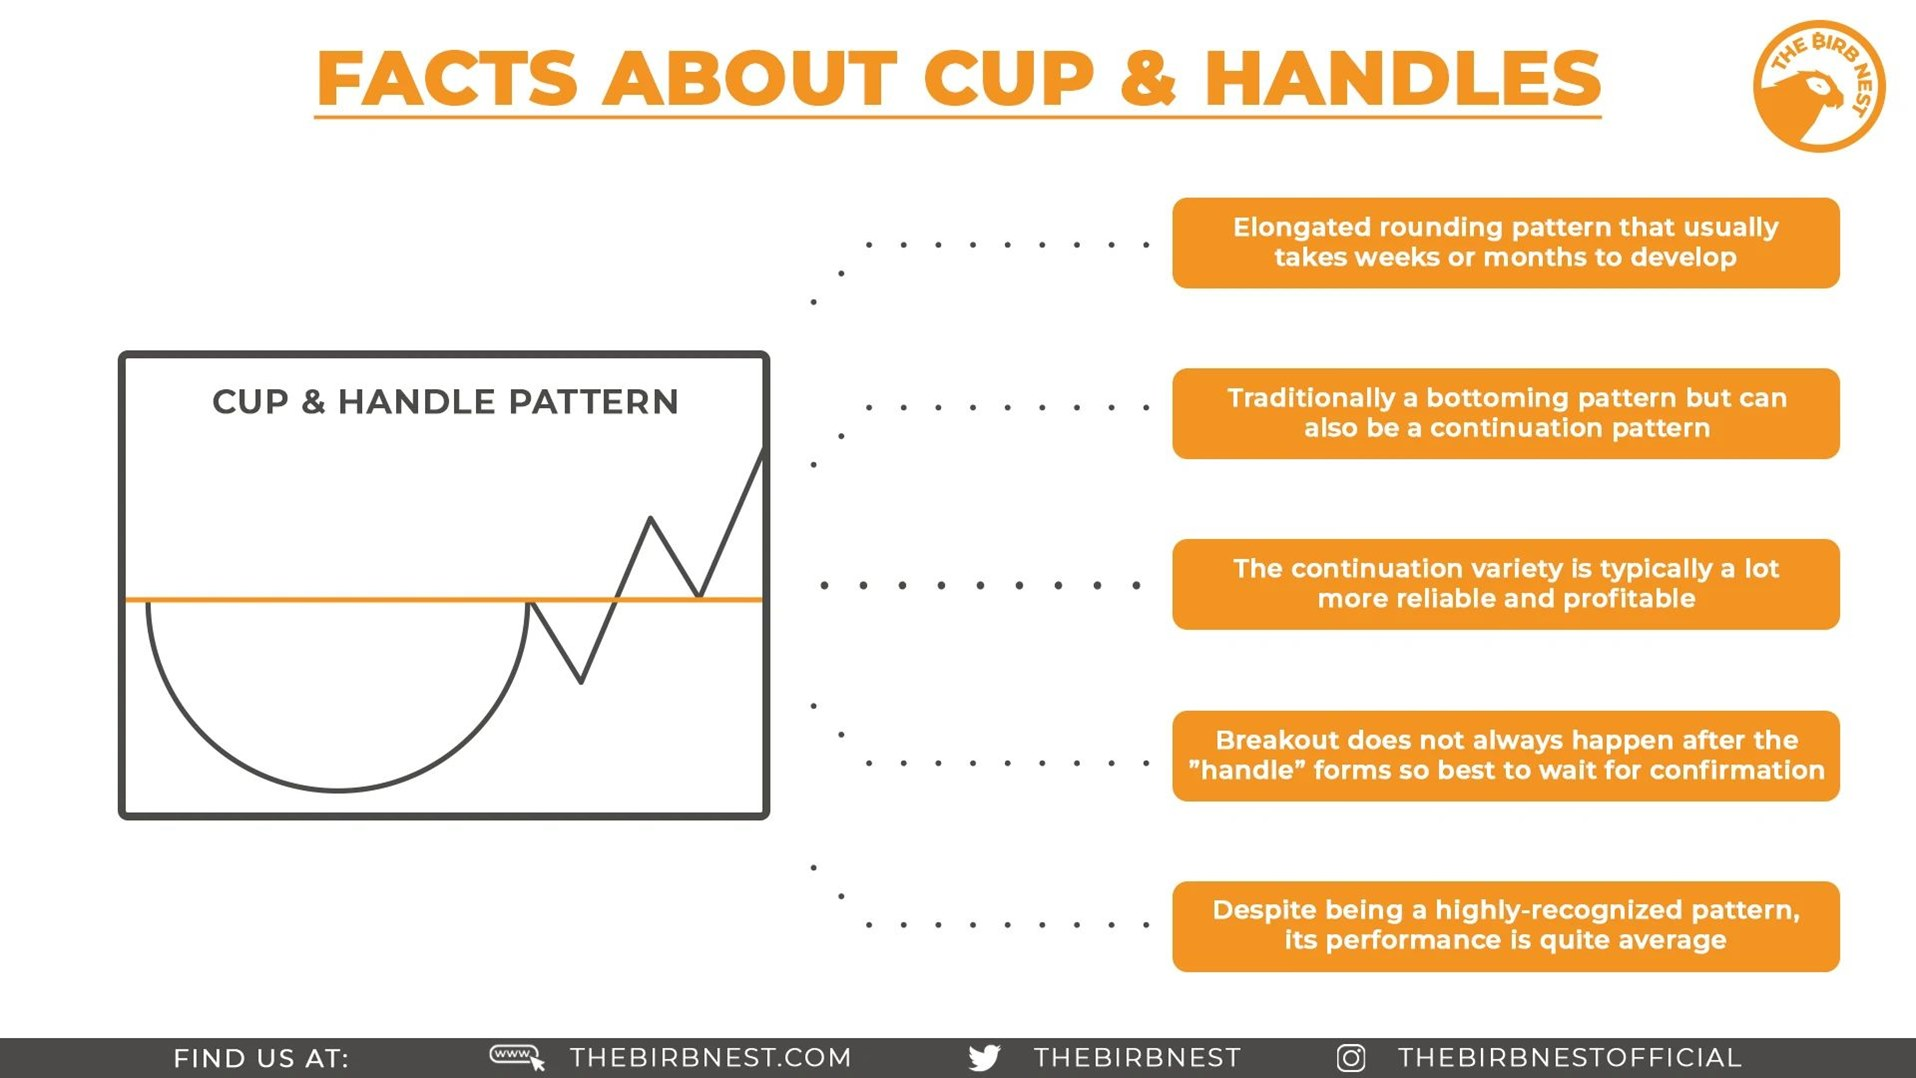 Facts About Cup & Handles